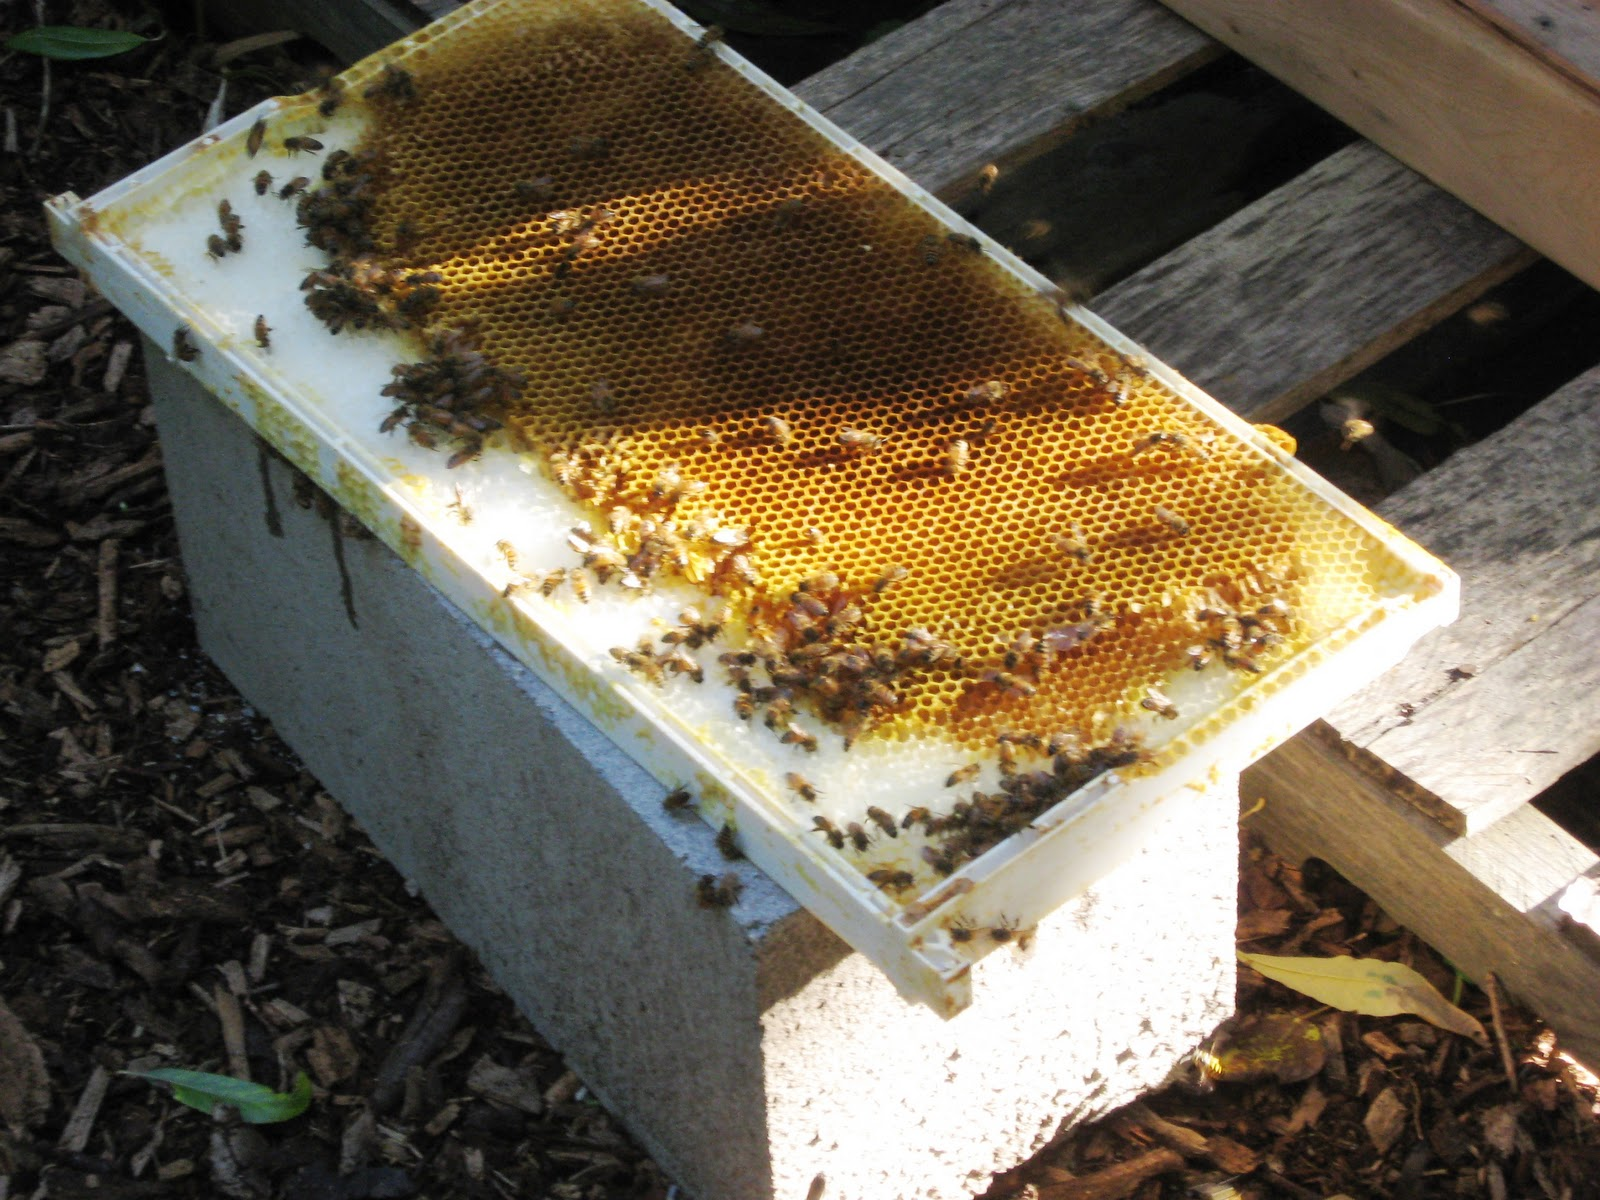 How to make a moisture quilt for a langstroth hive honey - I Ve Finished My Prototype Moisture Quilt Insulated Hive Cover Waiting For My Patent In My Next Post I Will Show You How I Made It